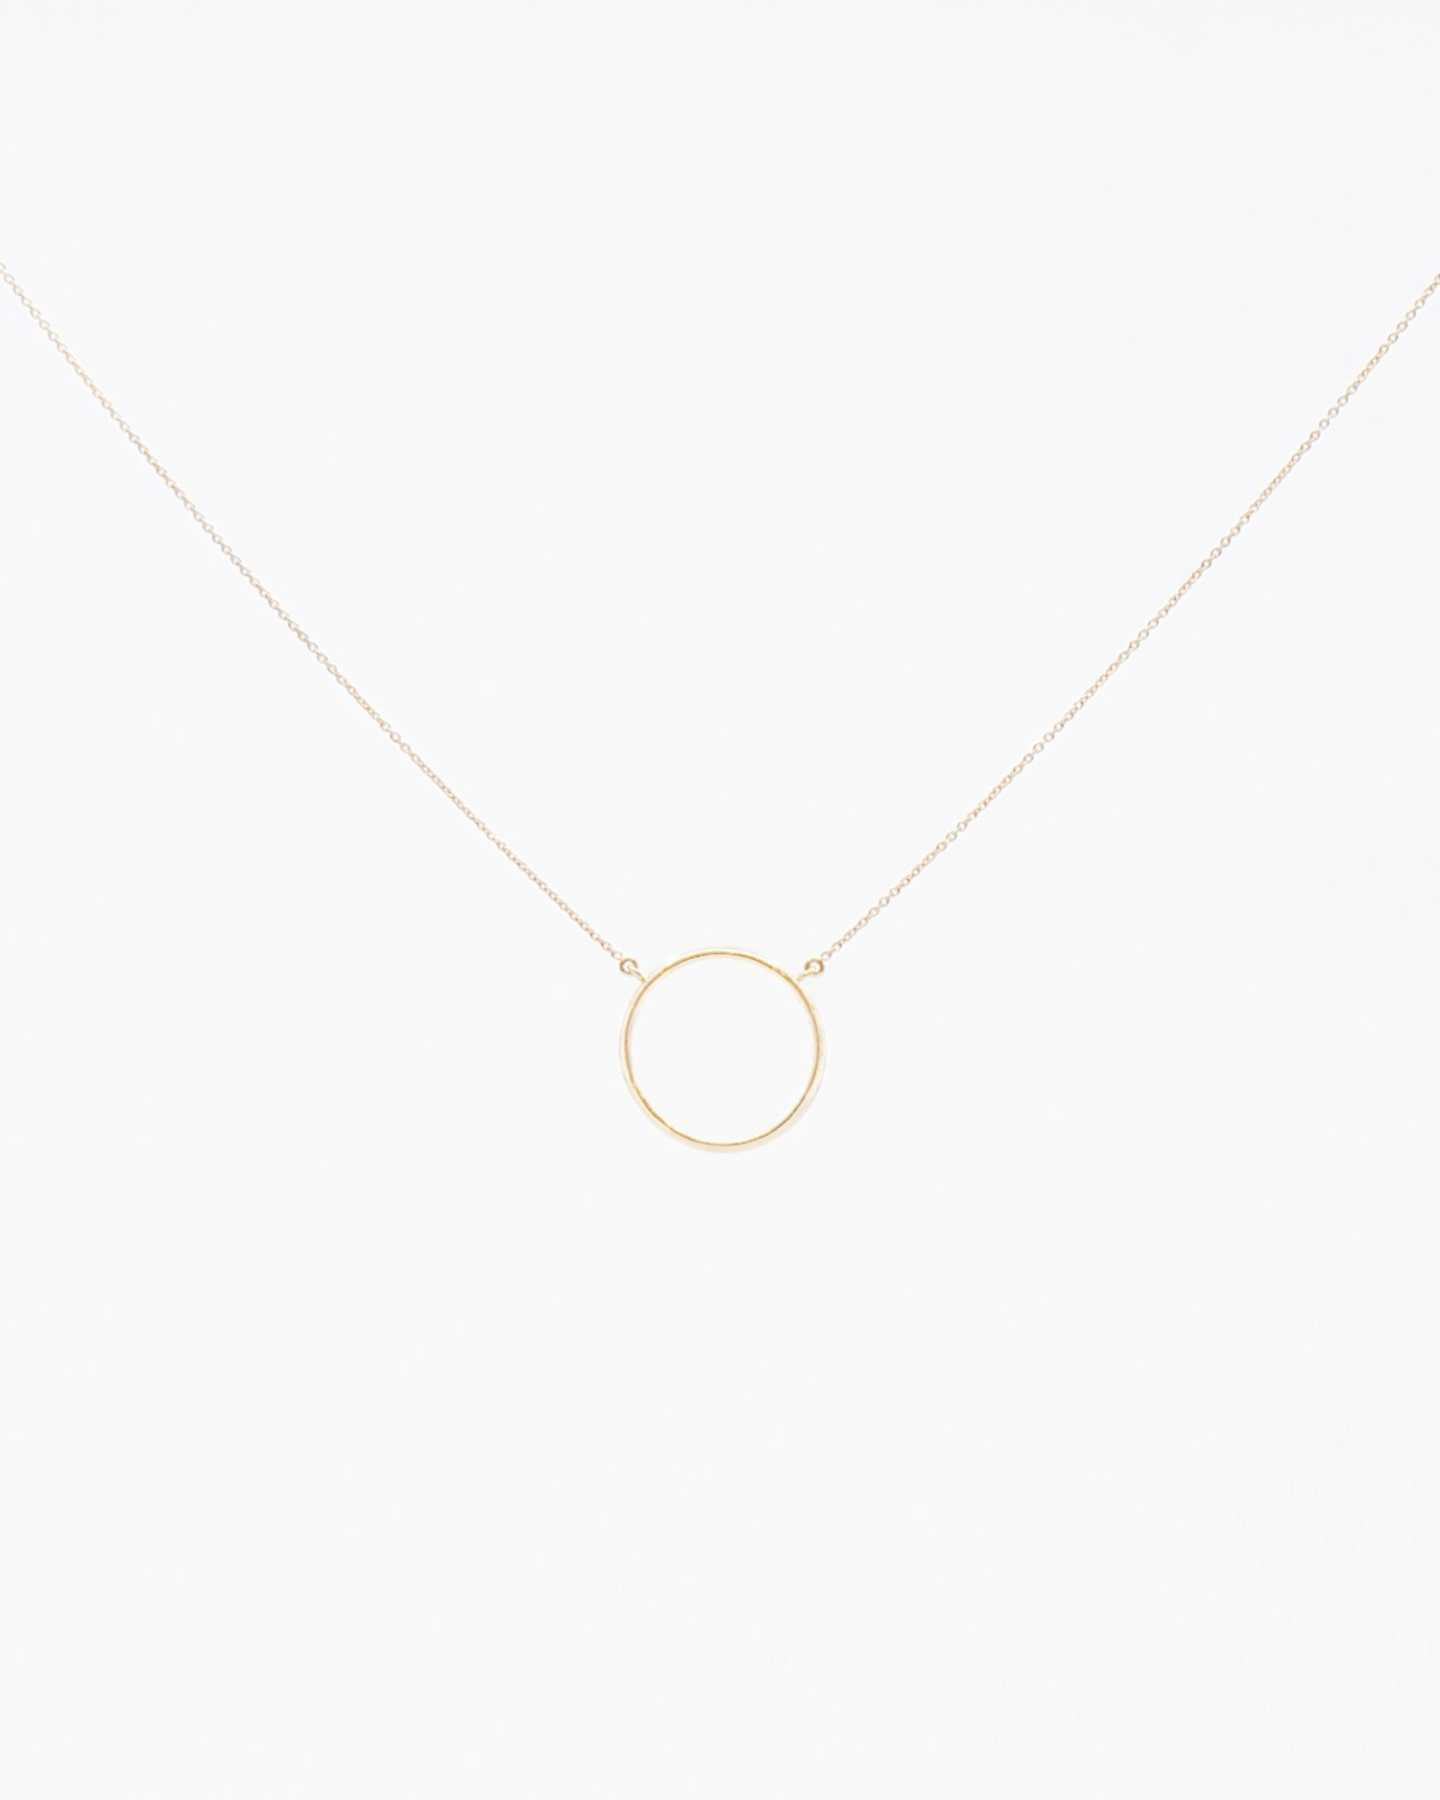 Eternity Necklace - Gold Vermeil